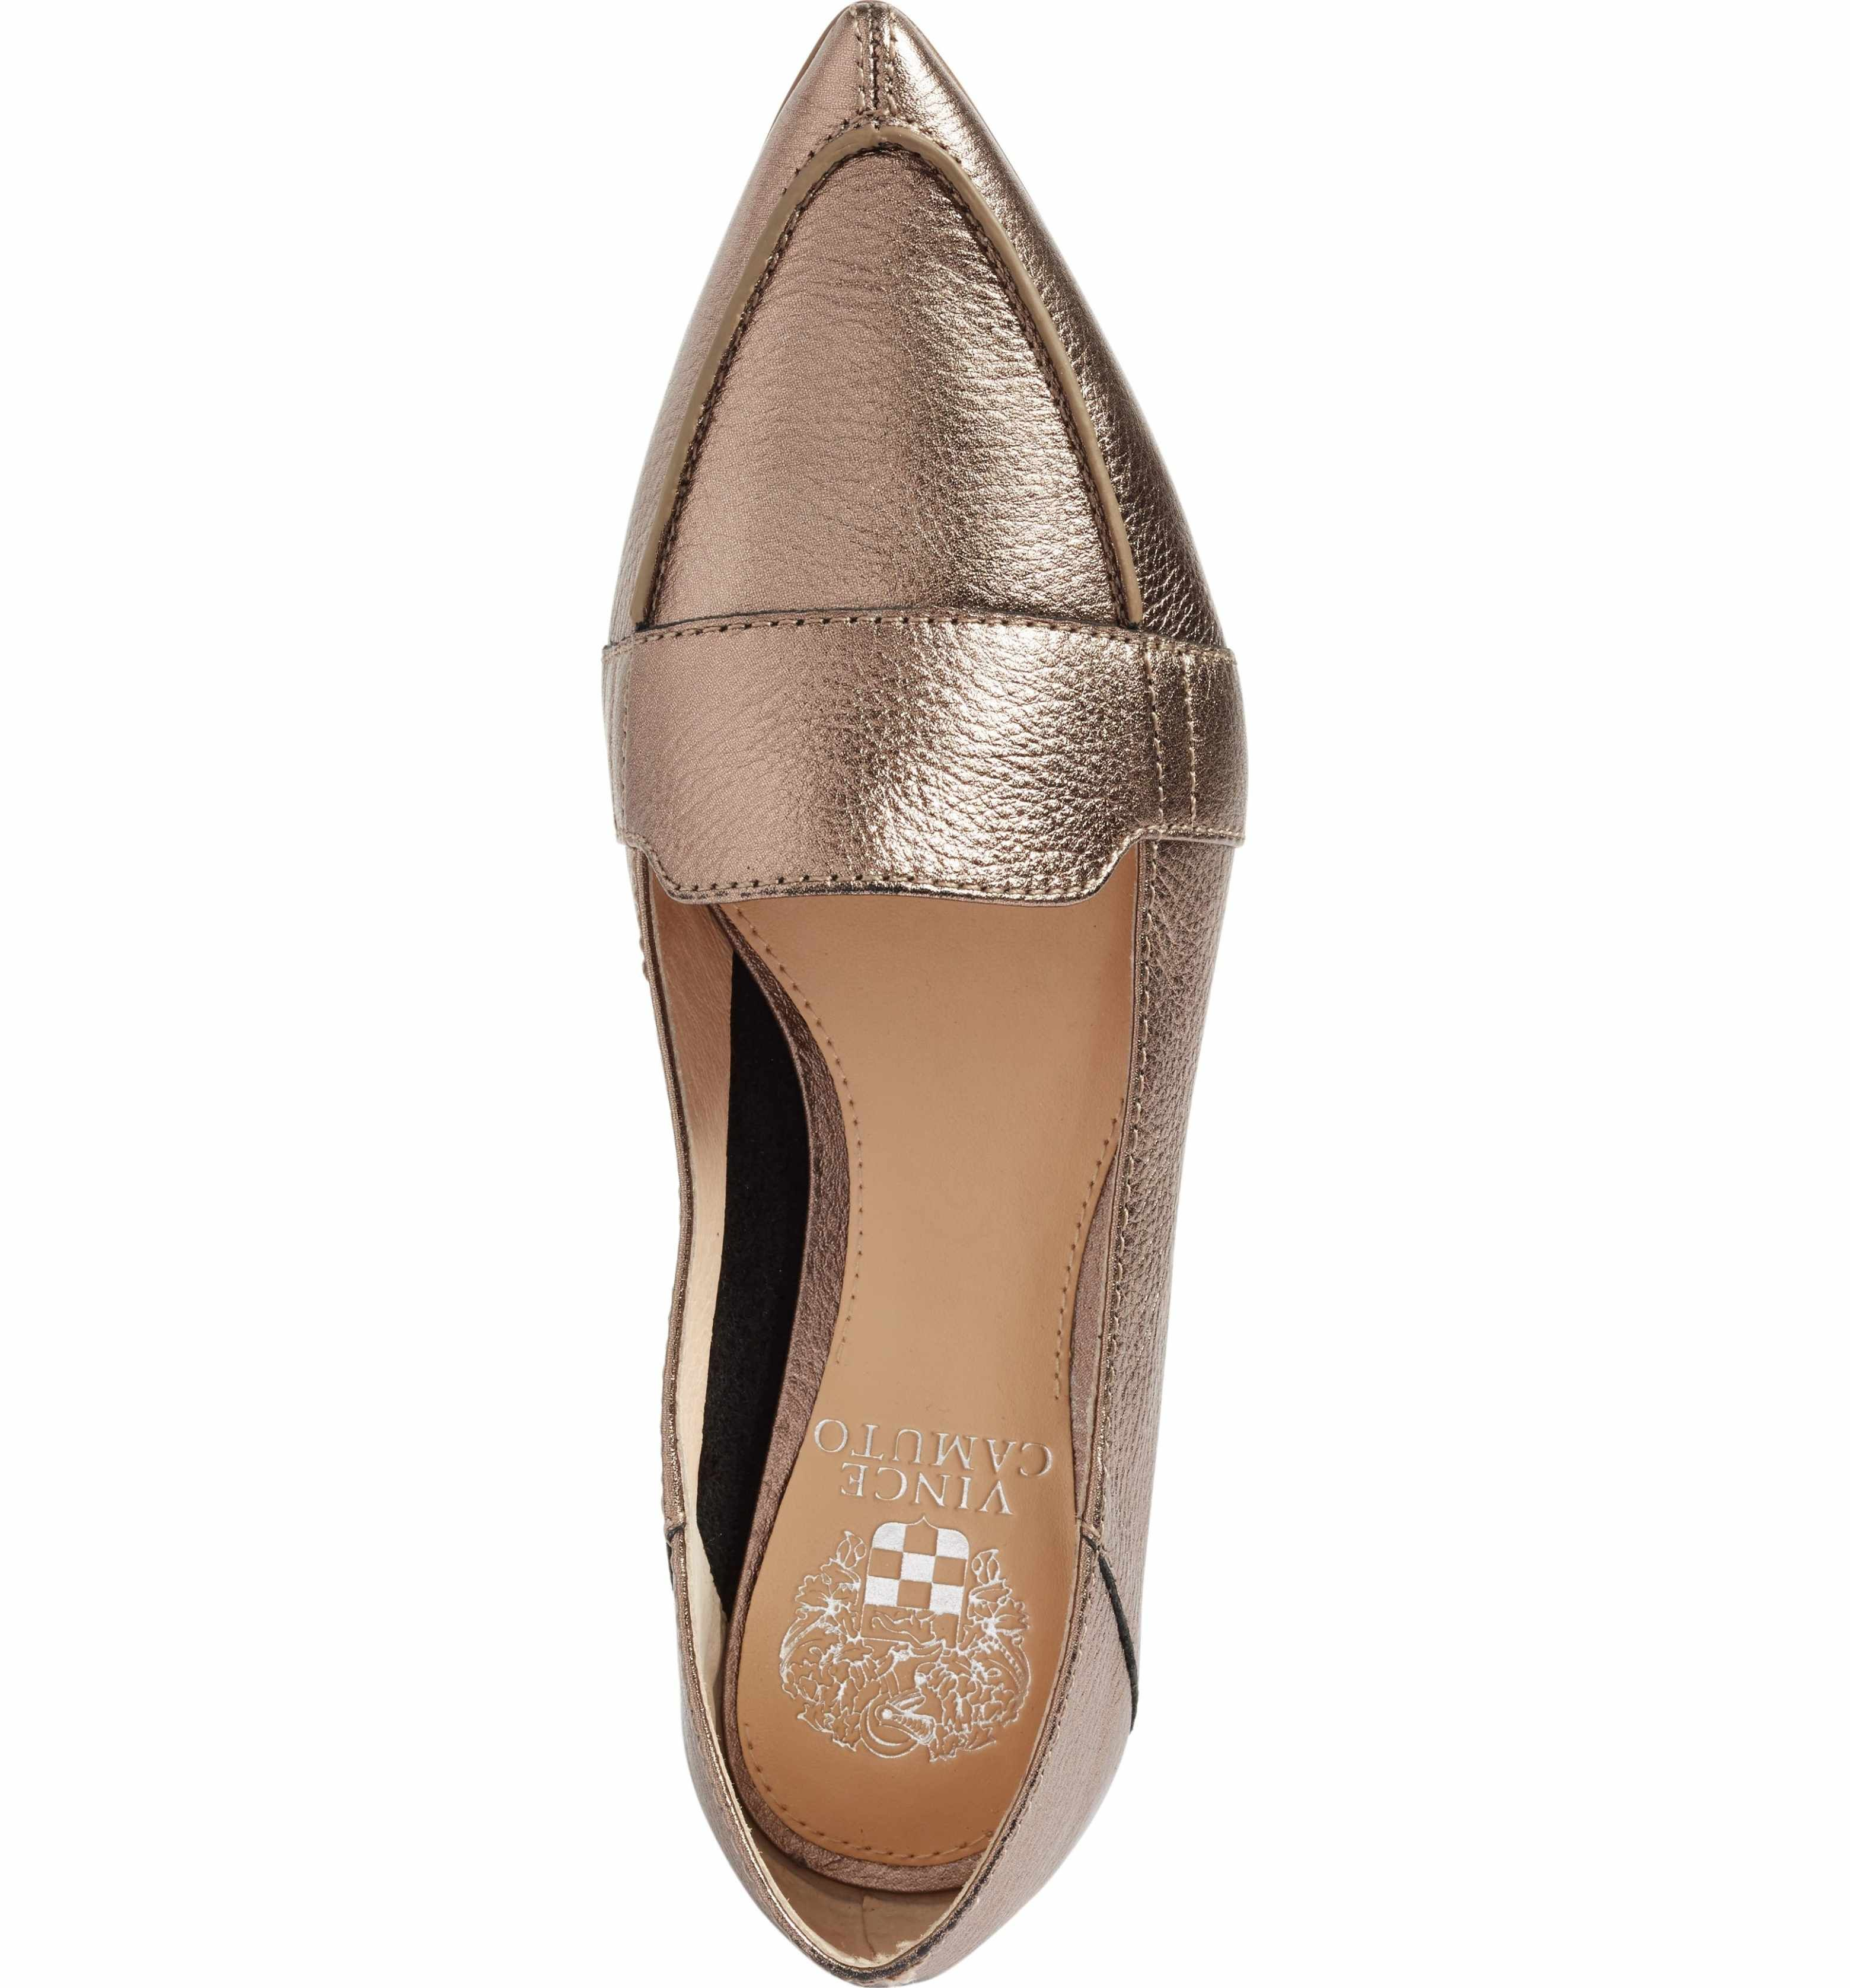 e7db8331a Main Image - Vince Camuto Maita Pointy Toe Flat (Women) (Nordstrom  Exclusive)